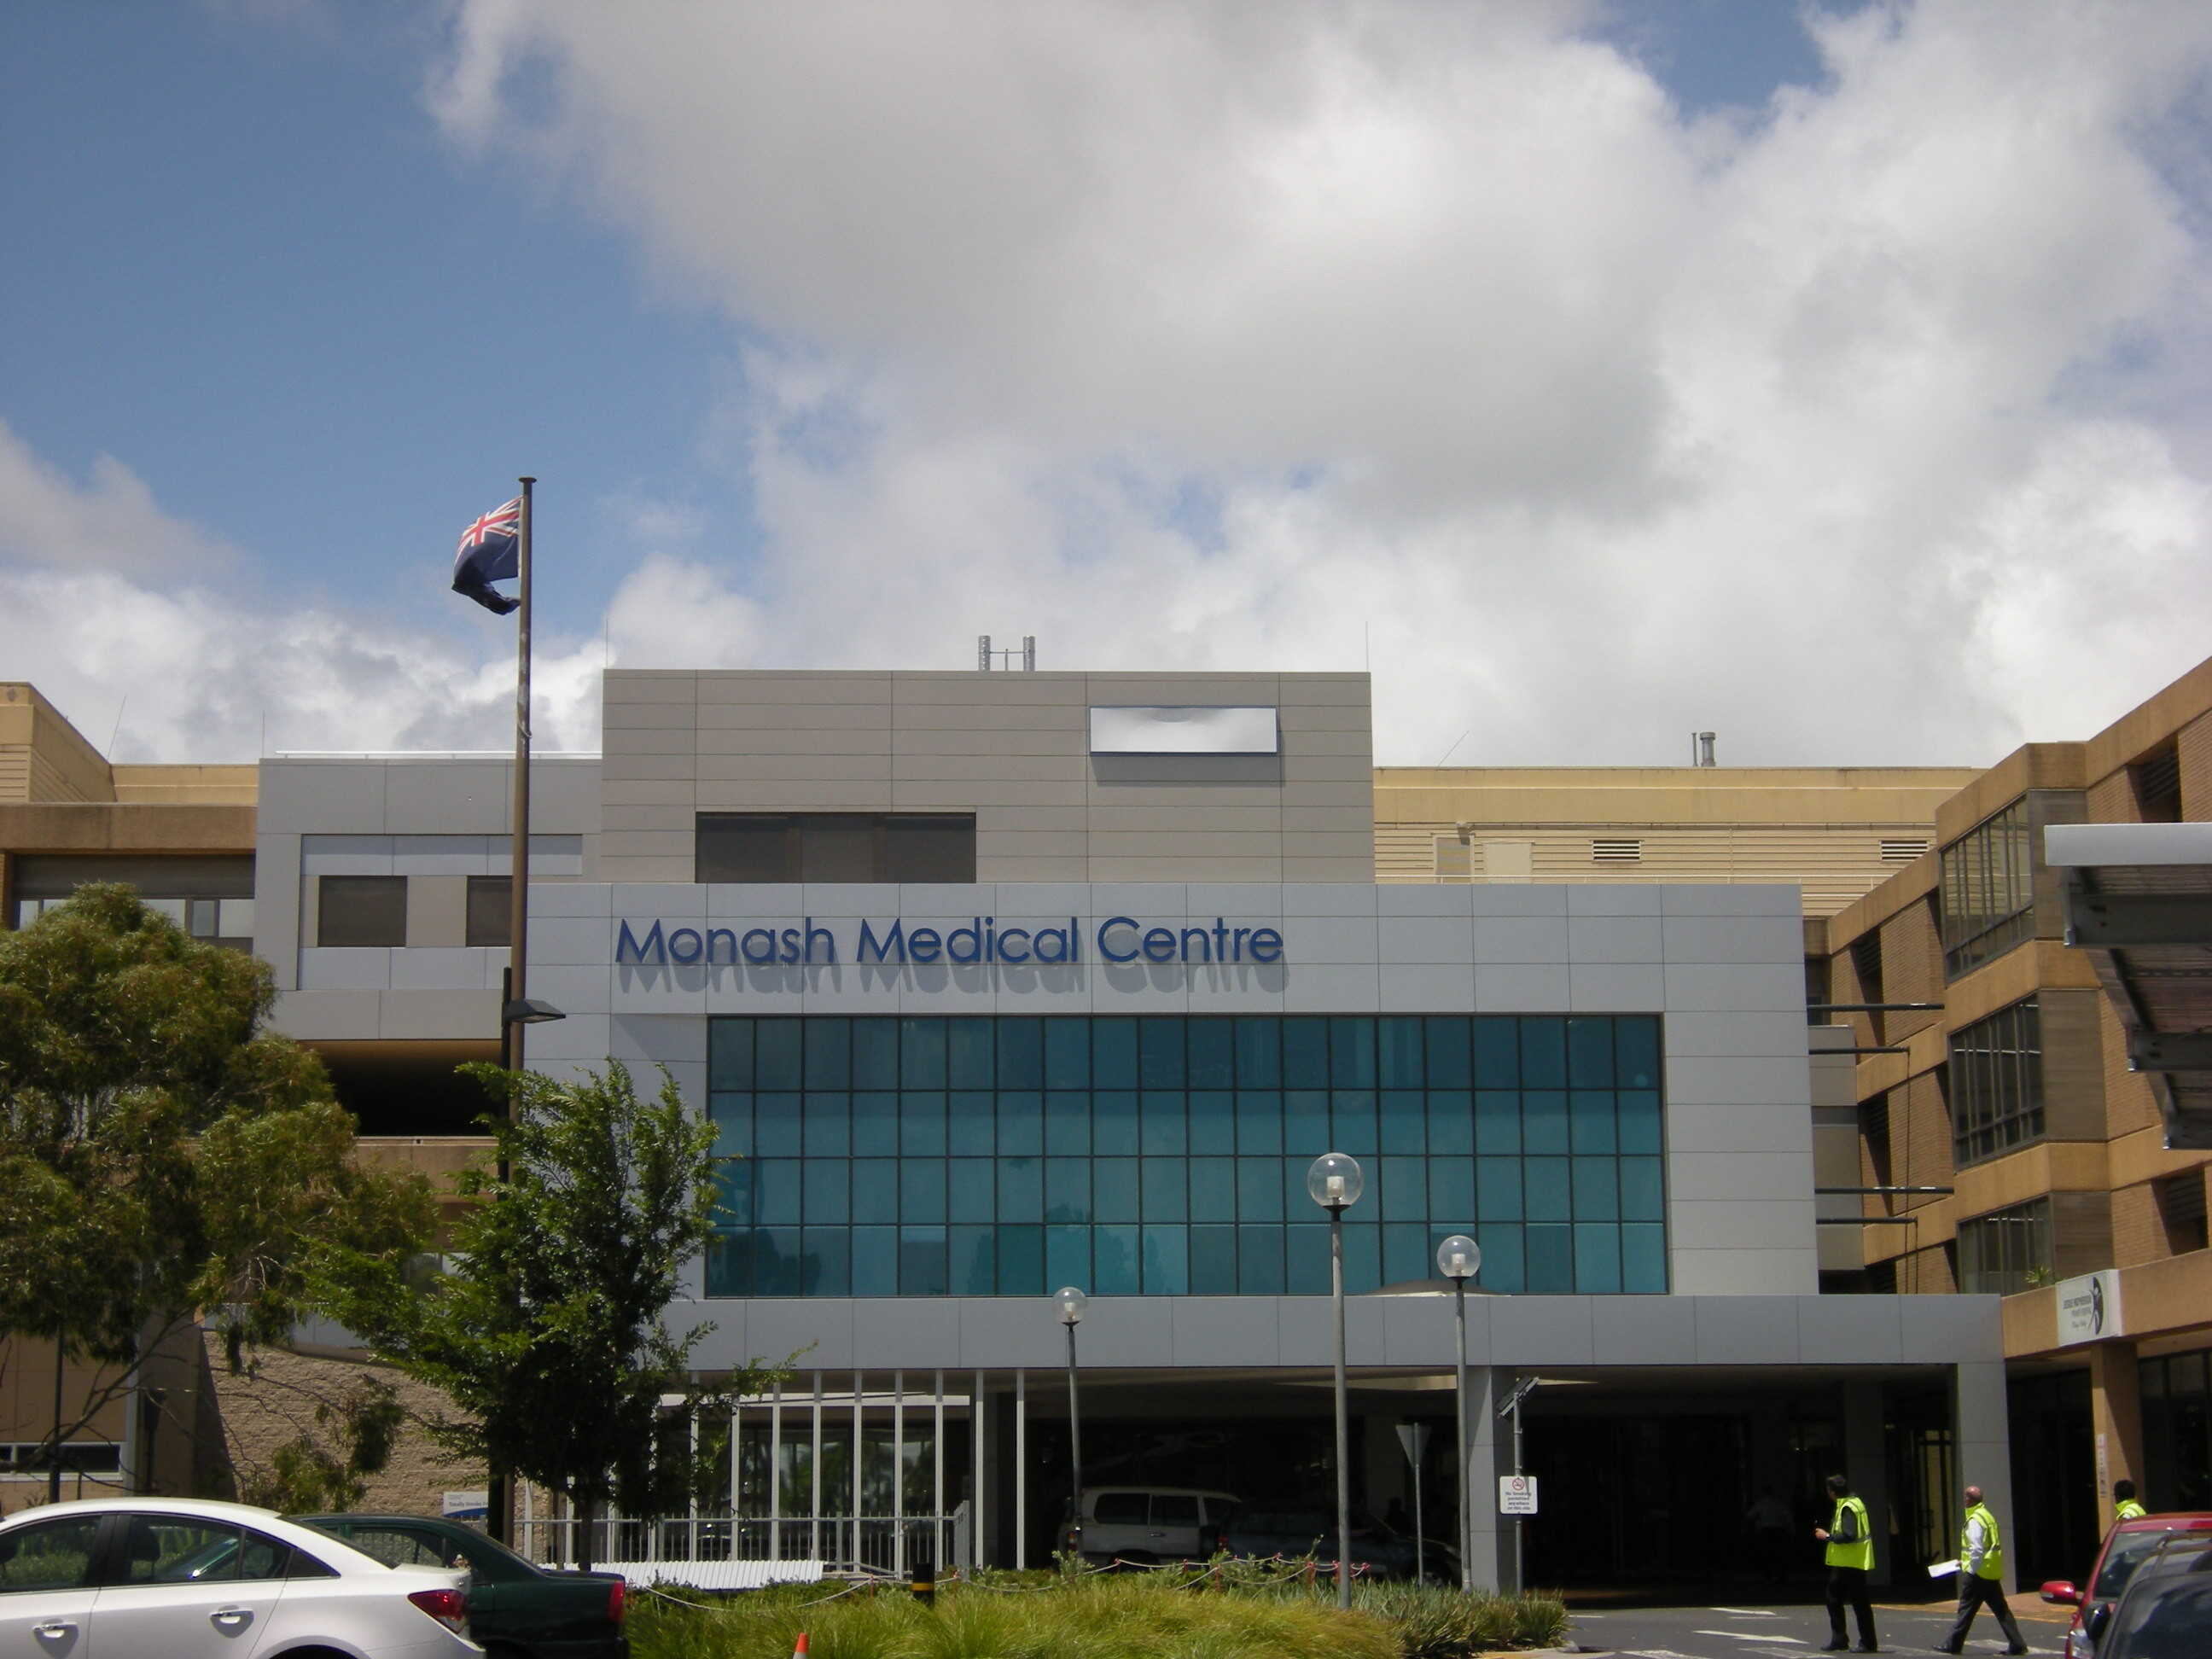 Monash Medical Centre